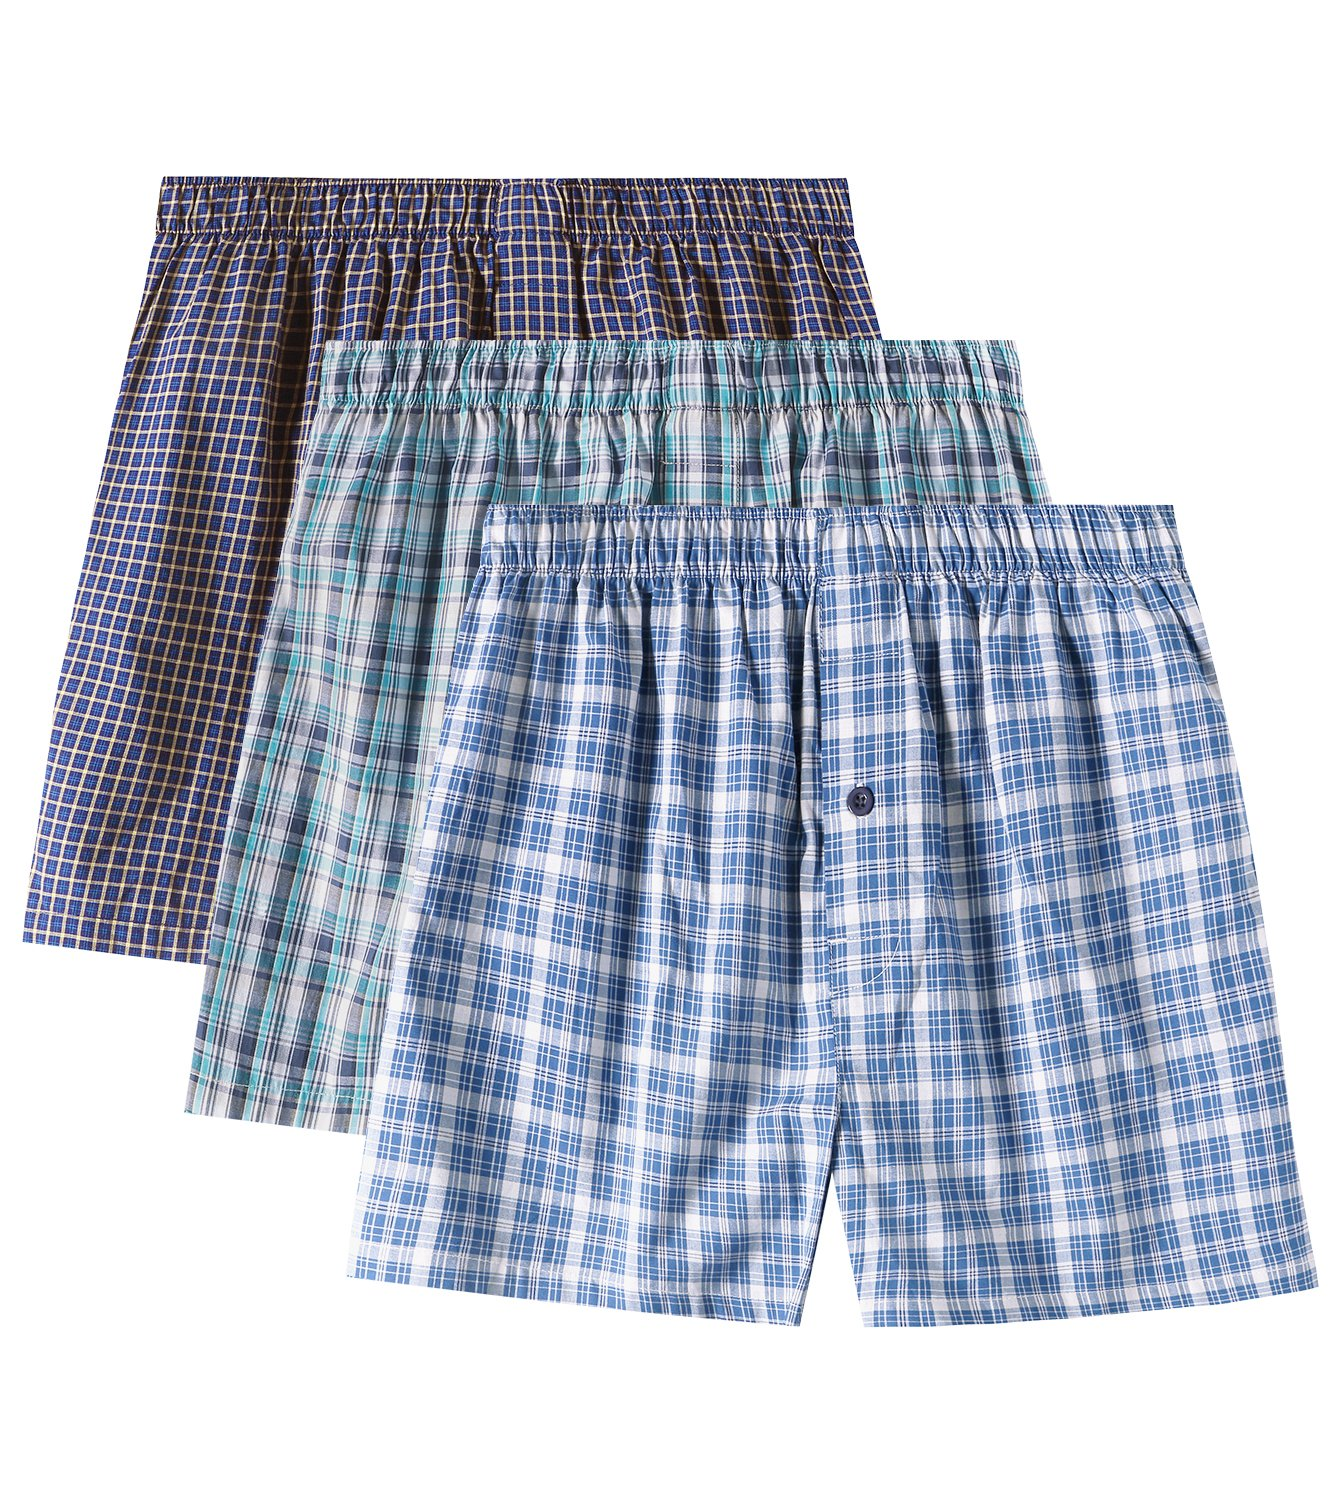 LAPASA Men's Cotton Classic Woven Boxer Shorts Plaid Underwear Button Fly 3 Pack M40 (Multicolor, X-Large)